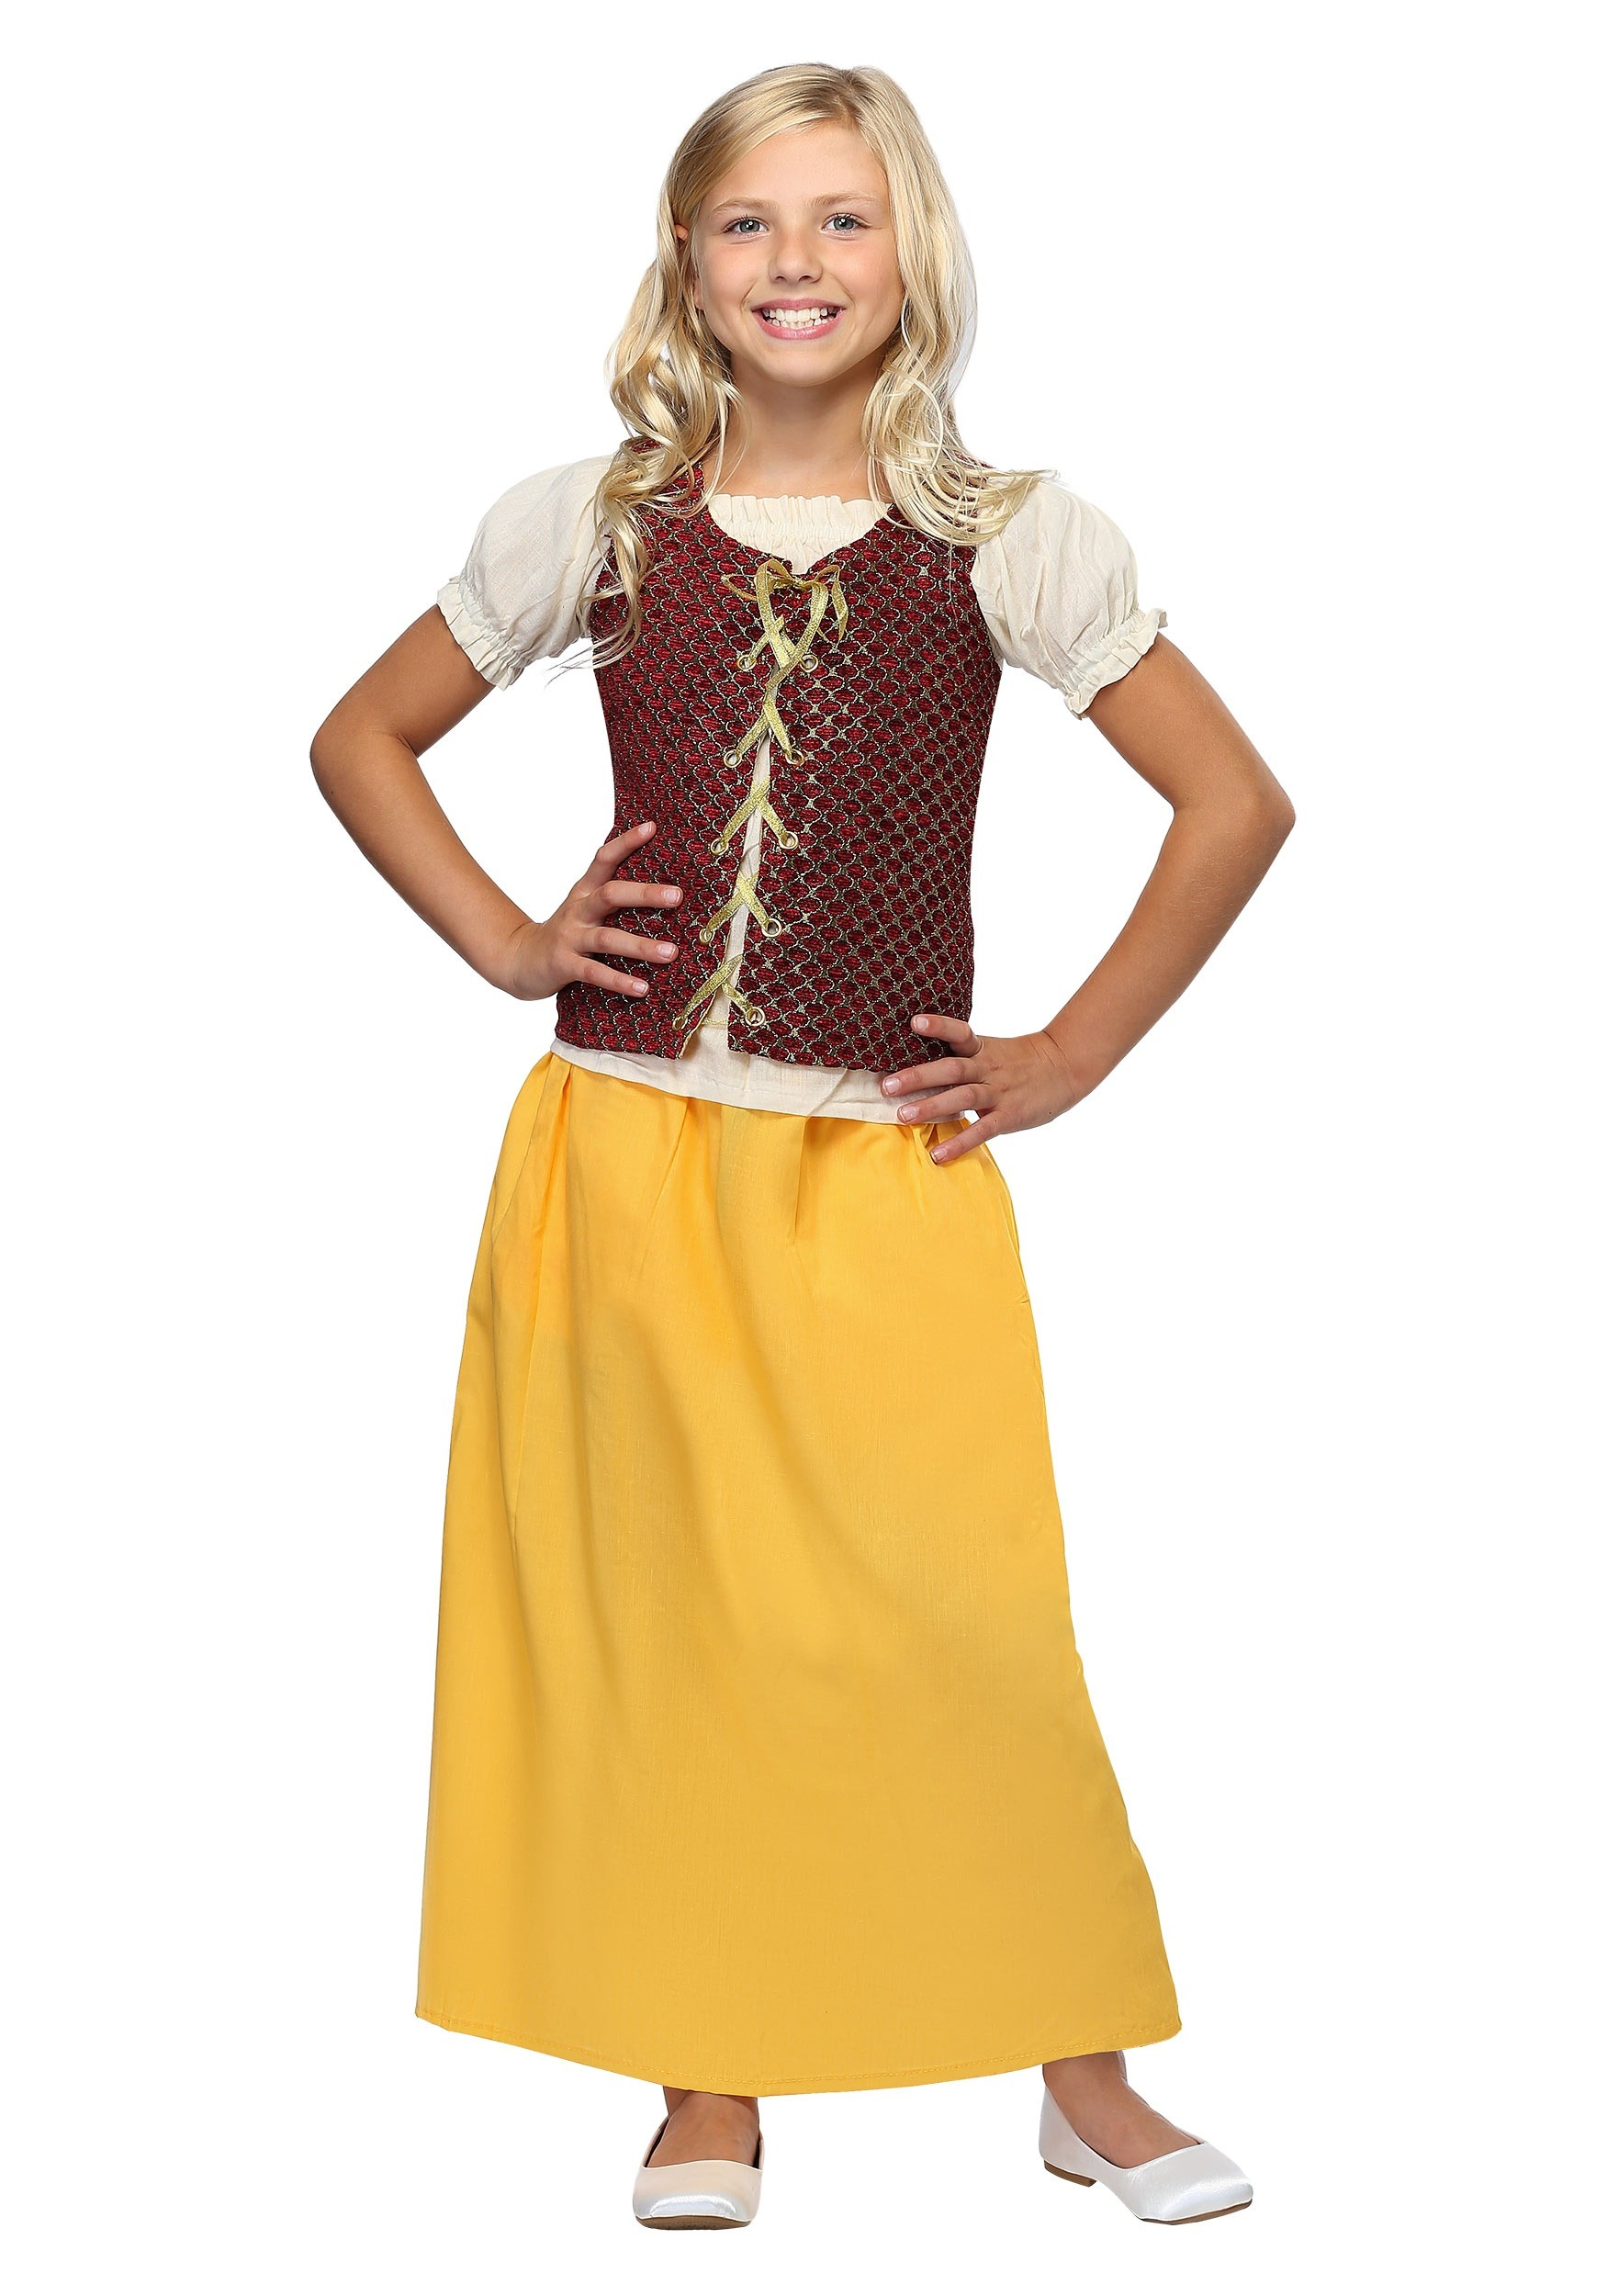 Red Peasant Dress Costume For Kids